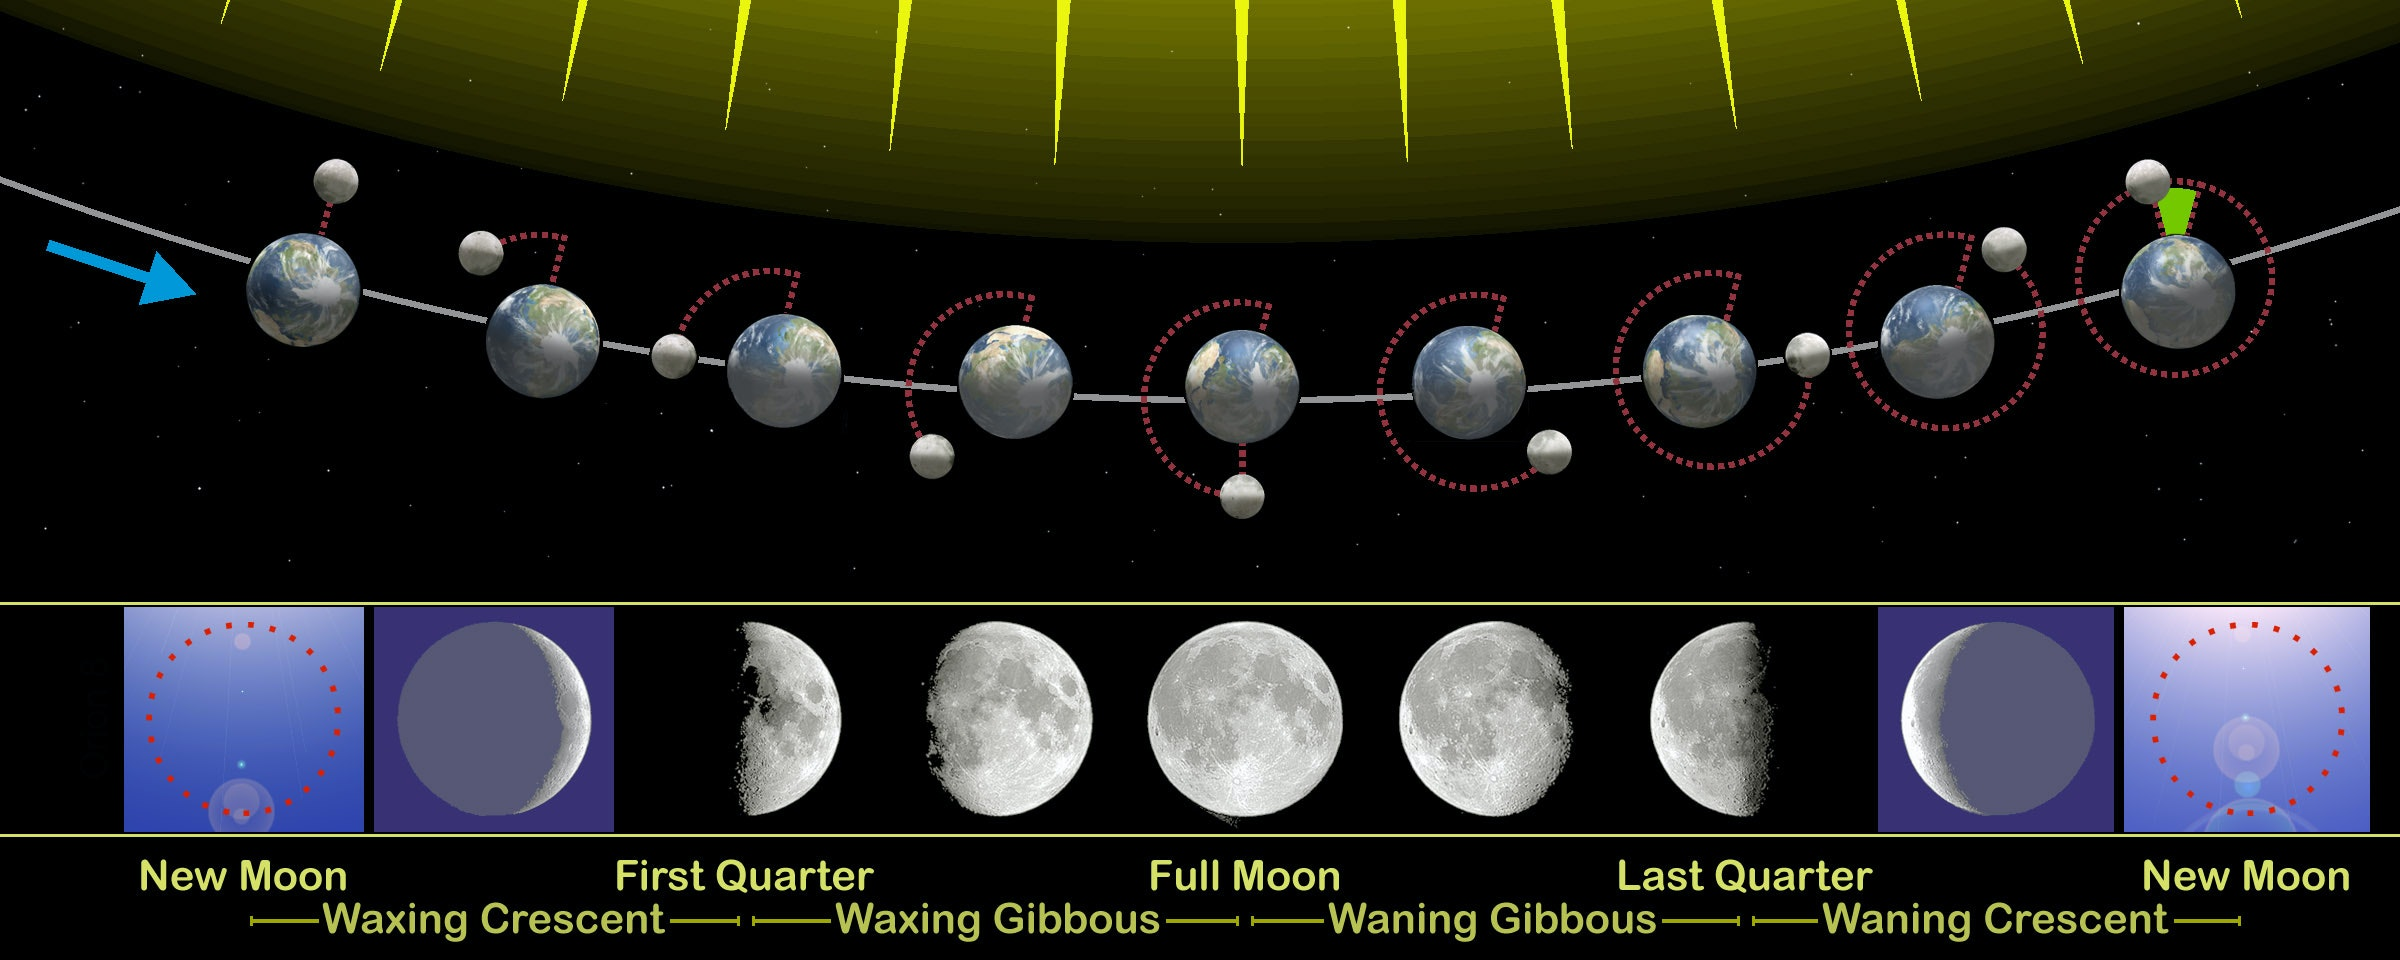 The phases of the moon visible from Earth are related to its revolution around our planet. Orion 8, CC BY-SA